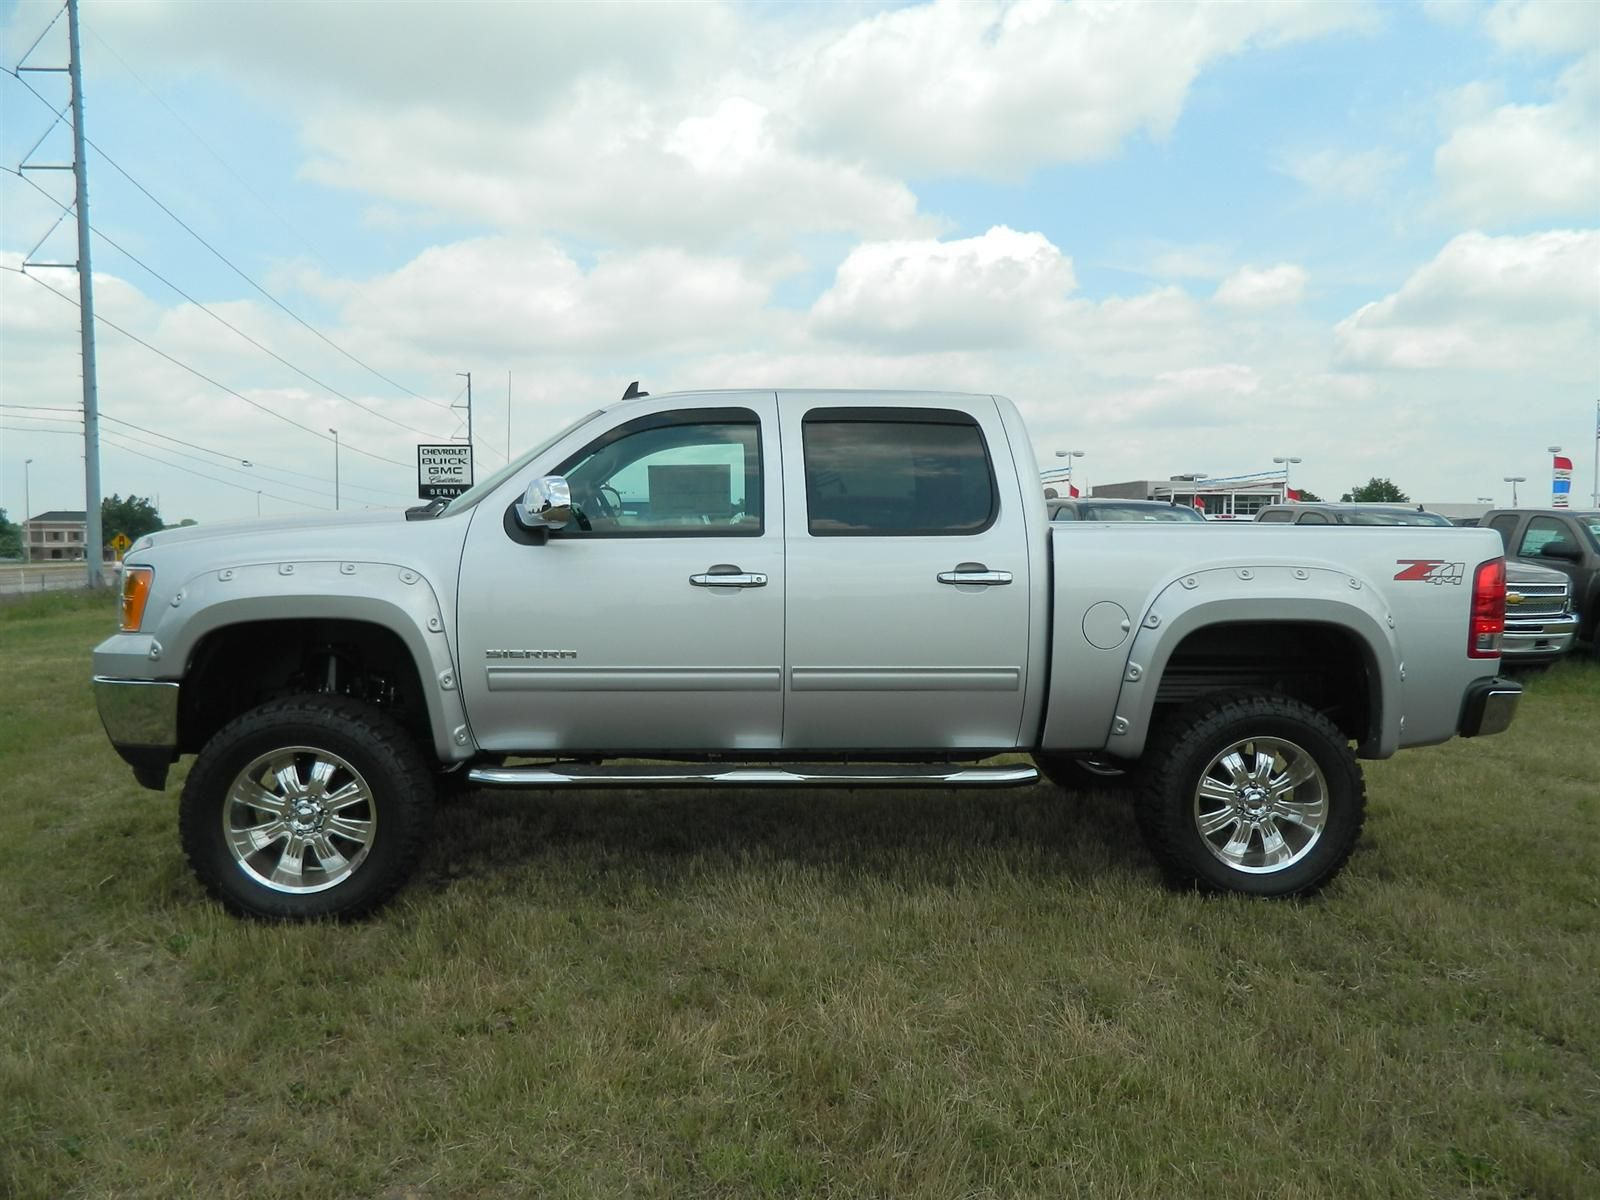 new 2012 gmc sierra 1500 rocky ridge conversion for sale in jackson tn vin 3gtp2ve79cg225691. Black Bedroom Furniture Sets. Home Design Ideas